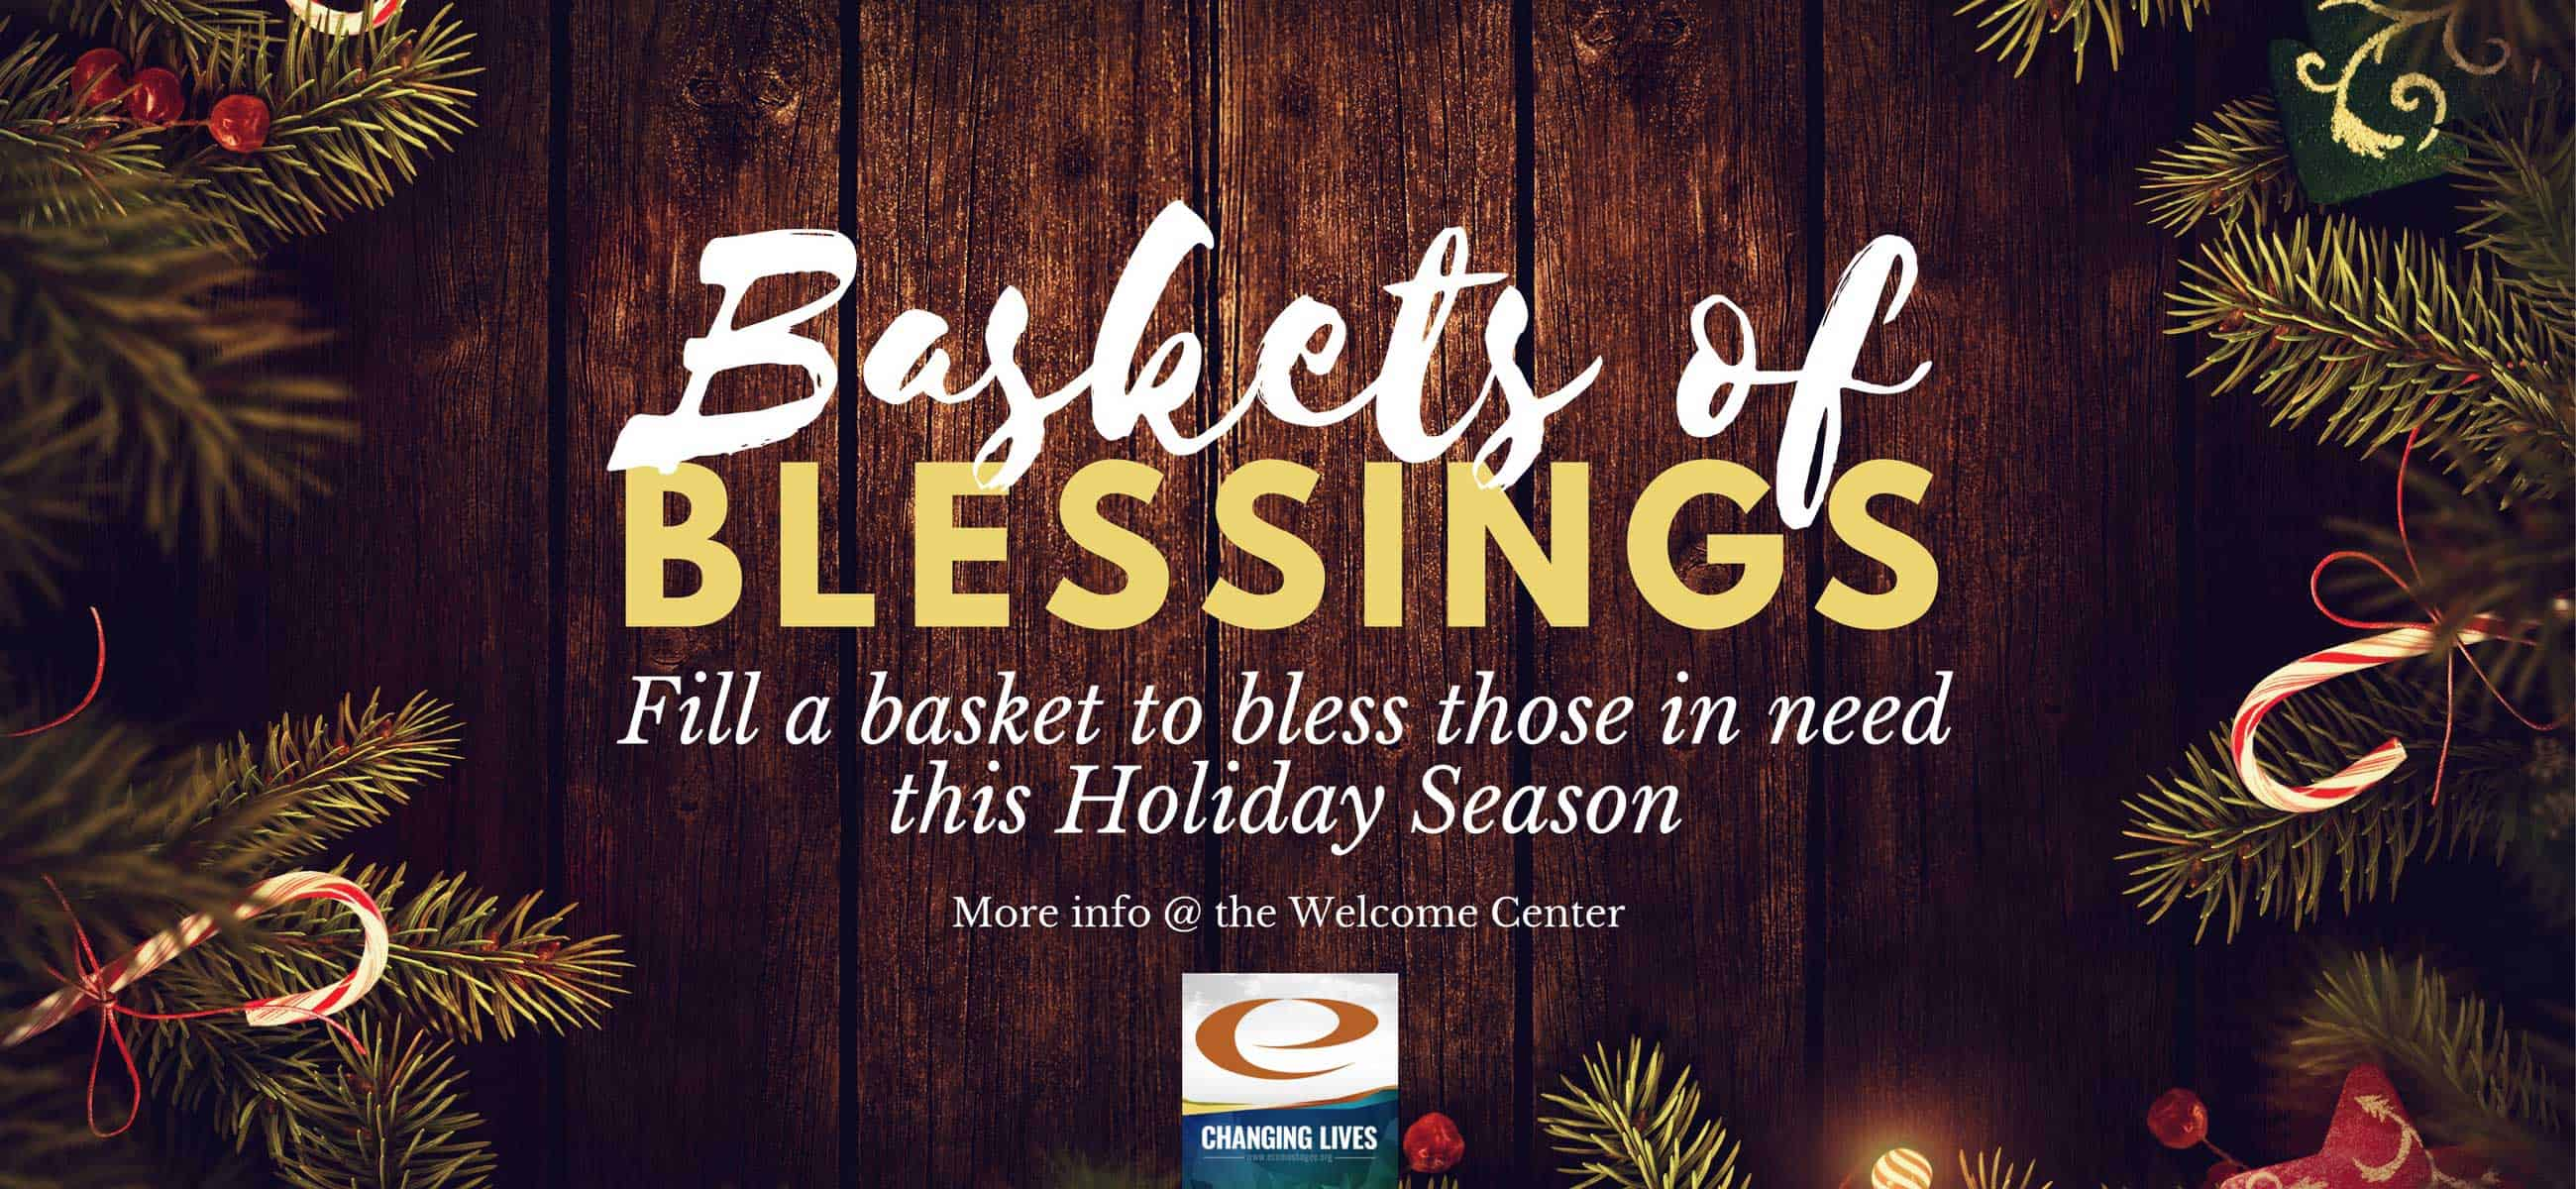 Web-2600×1200-Baskets-of-Blessings